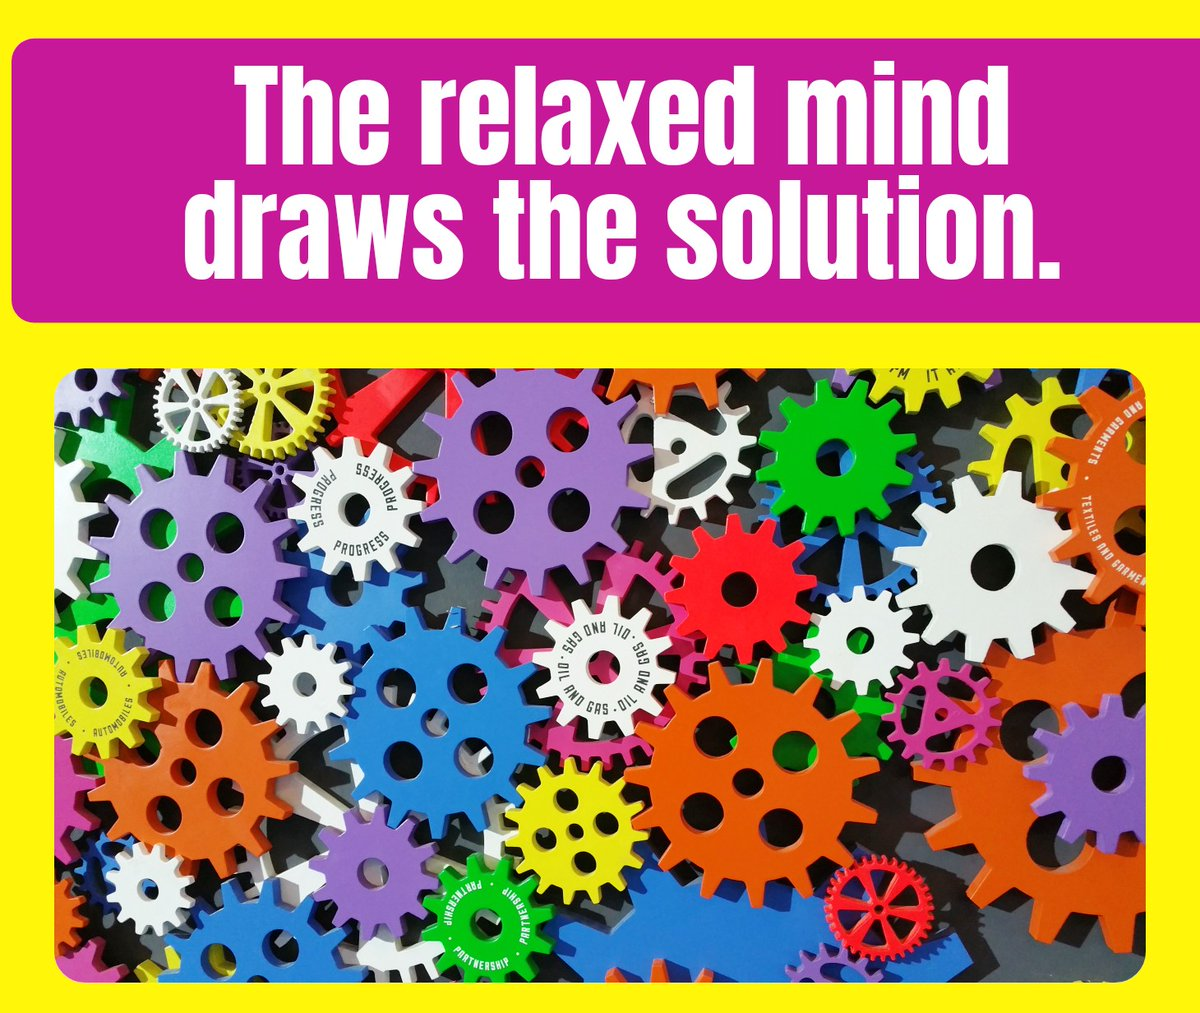 #problemsolving #problems #problem #relax #relaxation #Relaxed #meditation #meditate #tranquility #peaceofmind #Peace #peaceful #PeaceAndLove #peaceandlight #PeaceDay #Solution #solutions